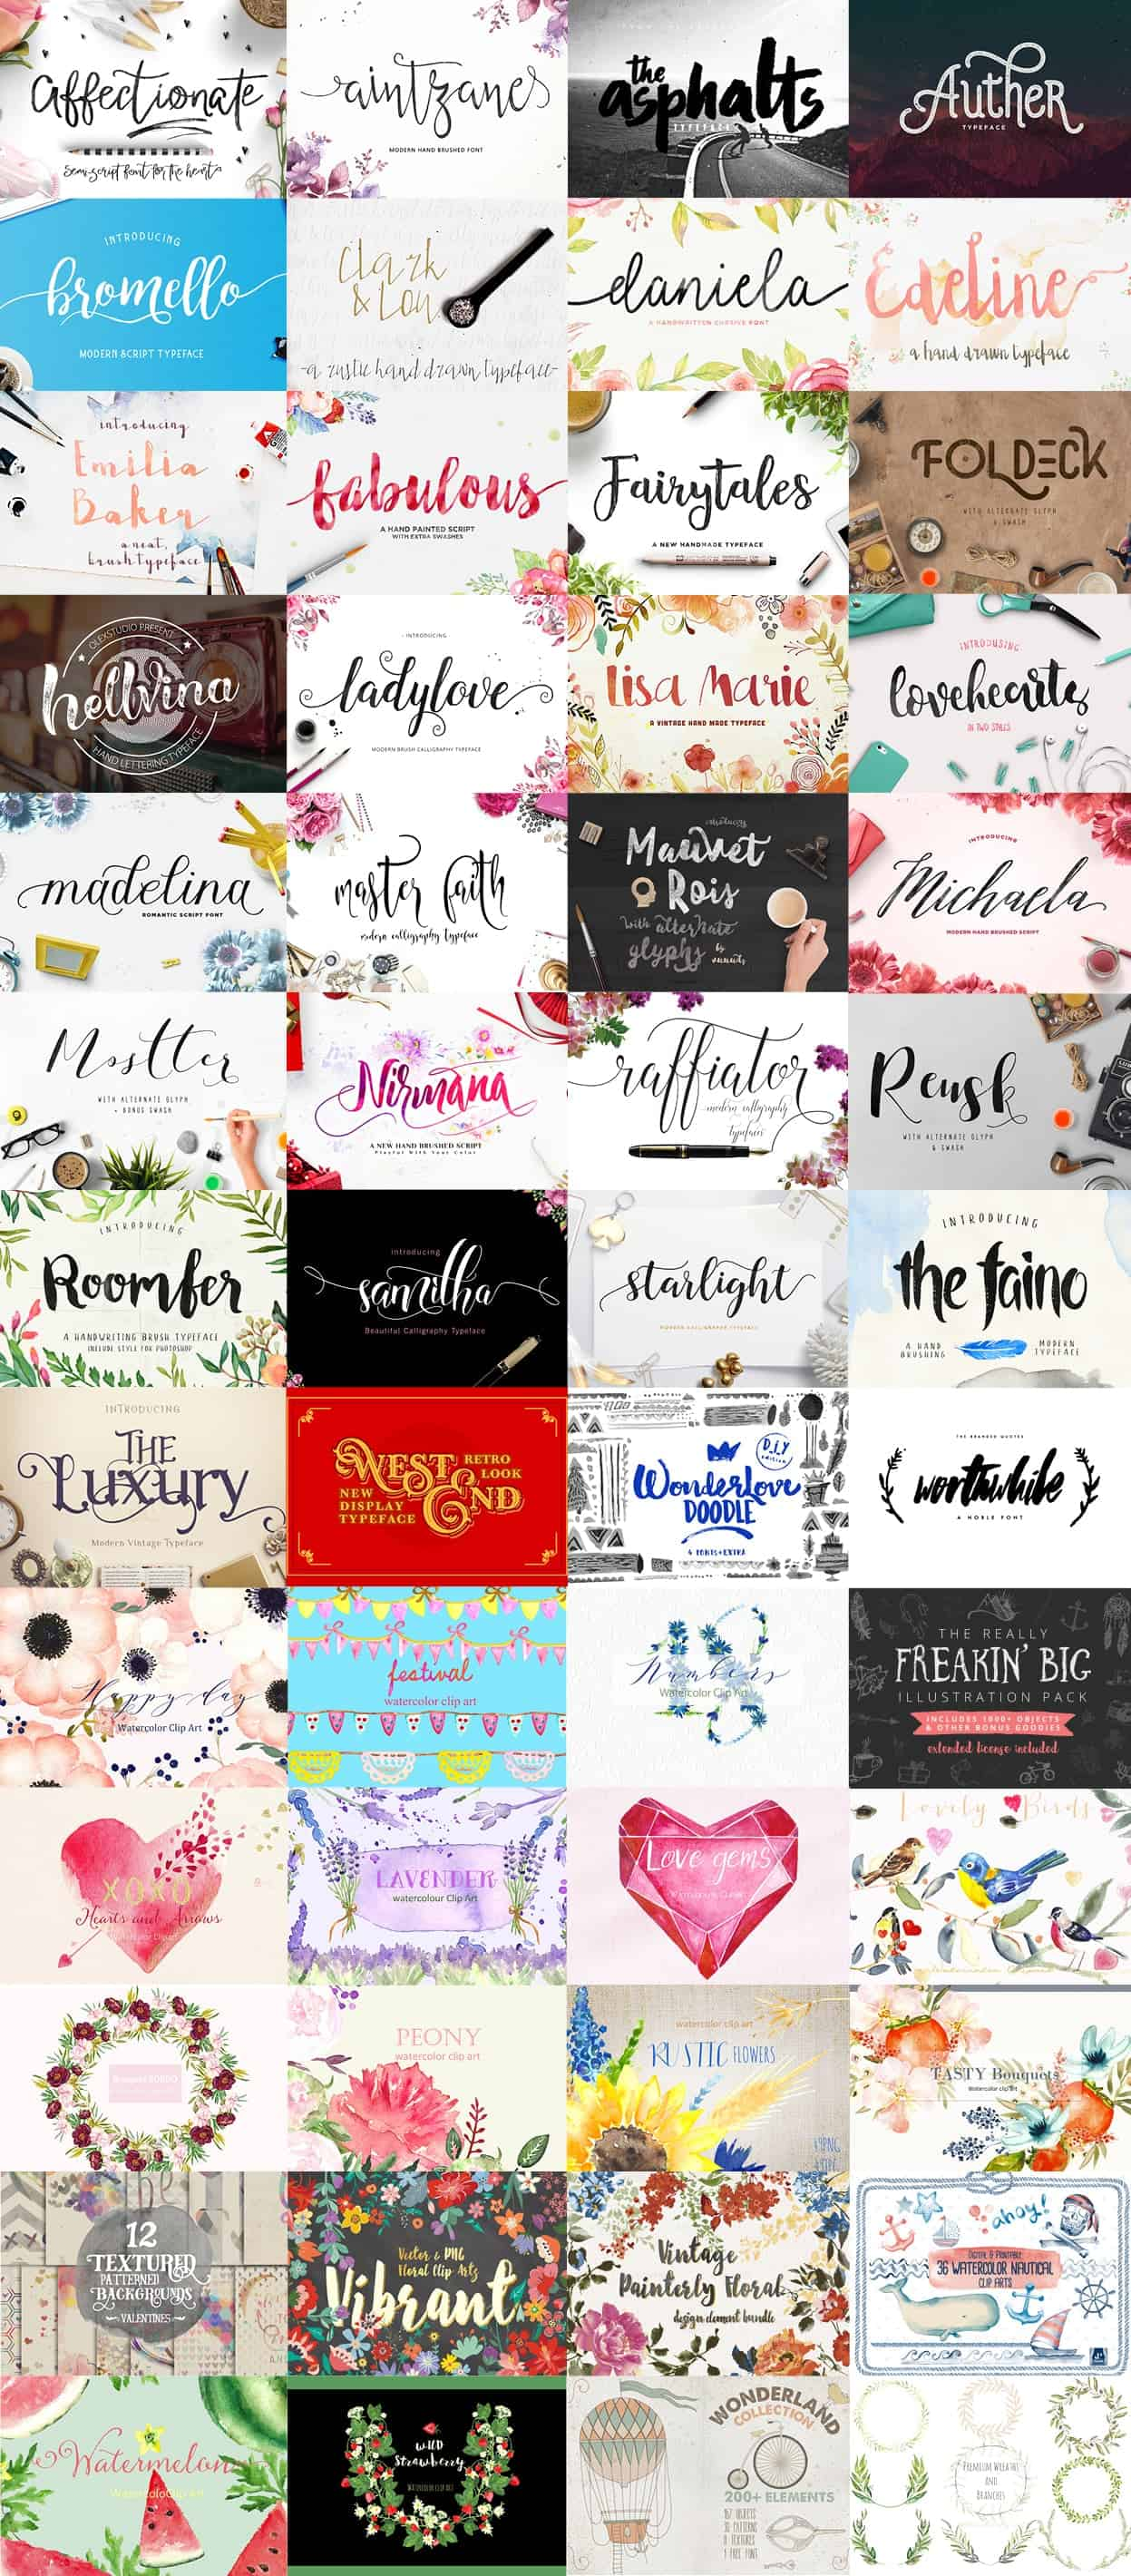 HUGE bundle of PRO grade fonts for 92% off!  I haven't seen this great of a deal on fonts anywhere!